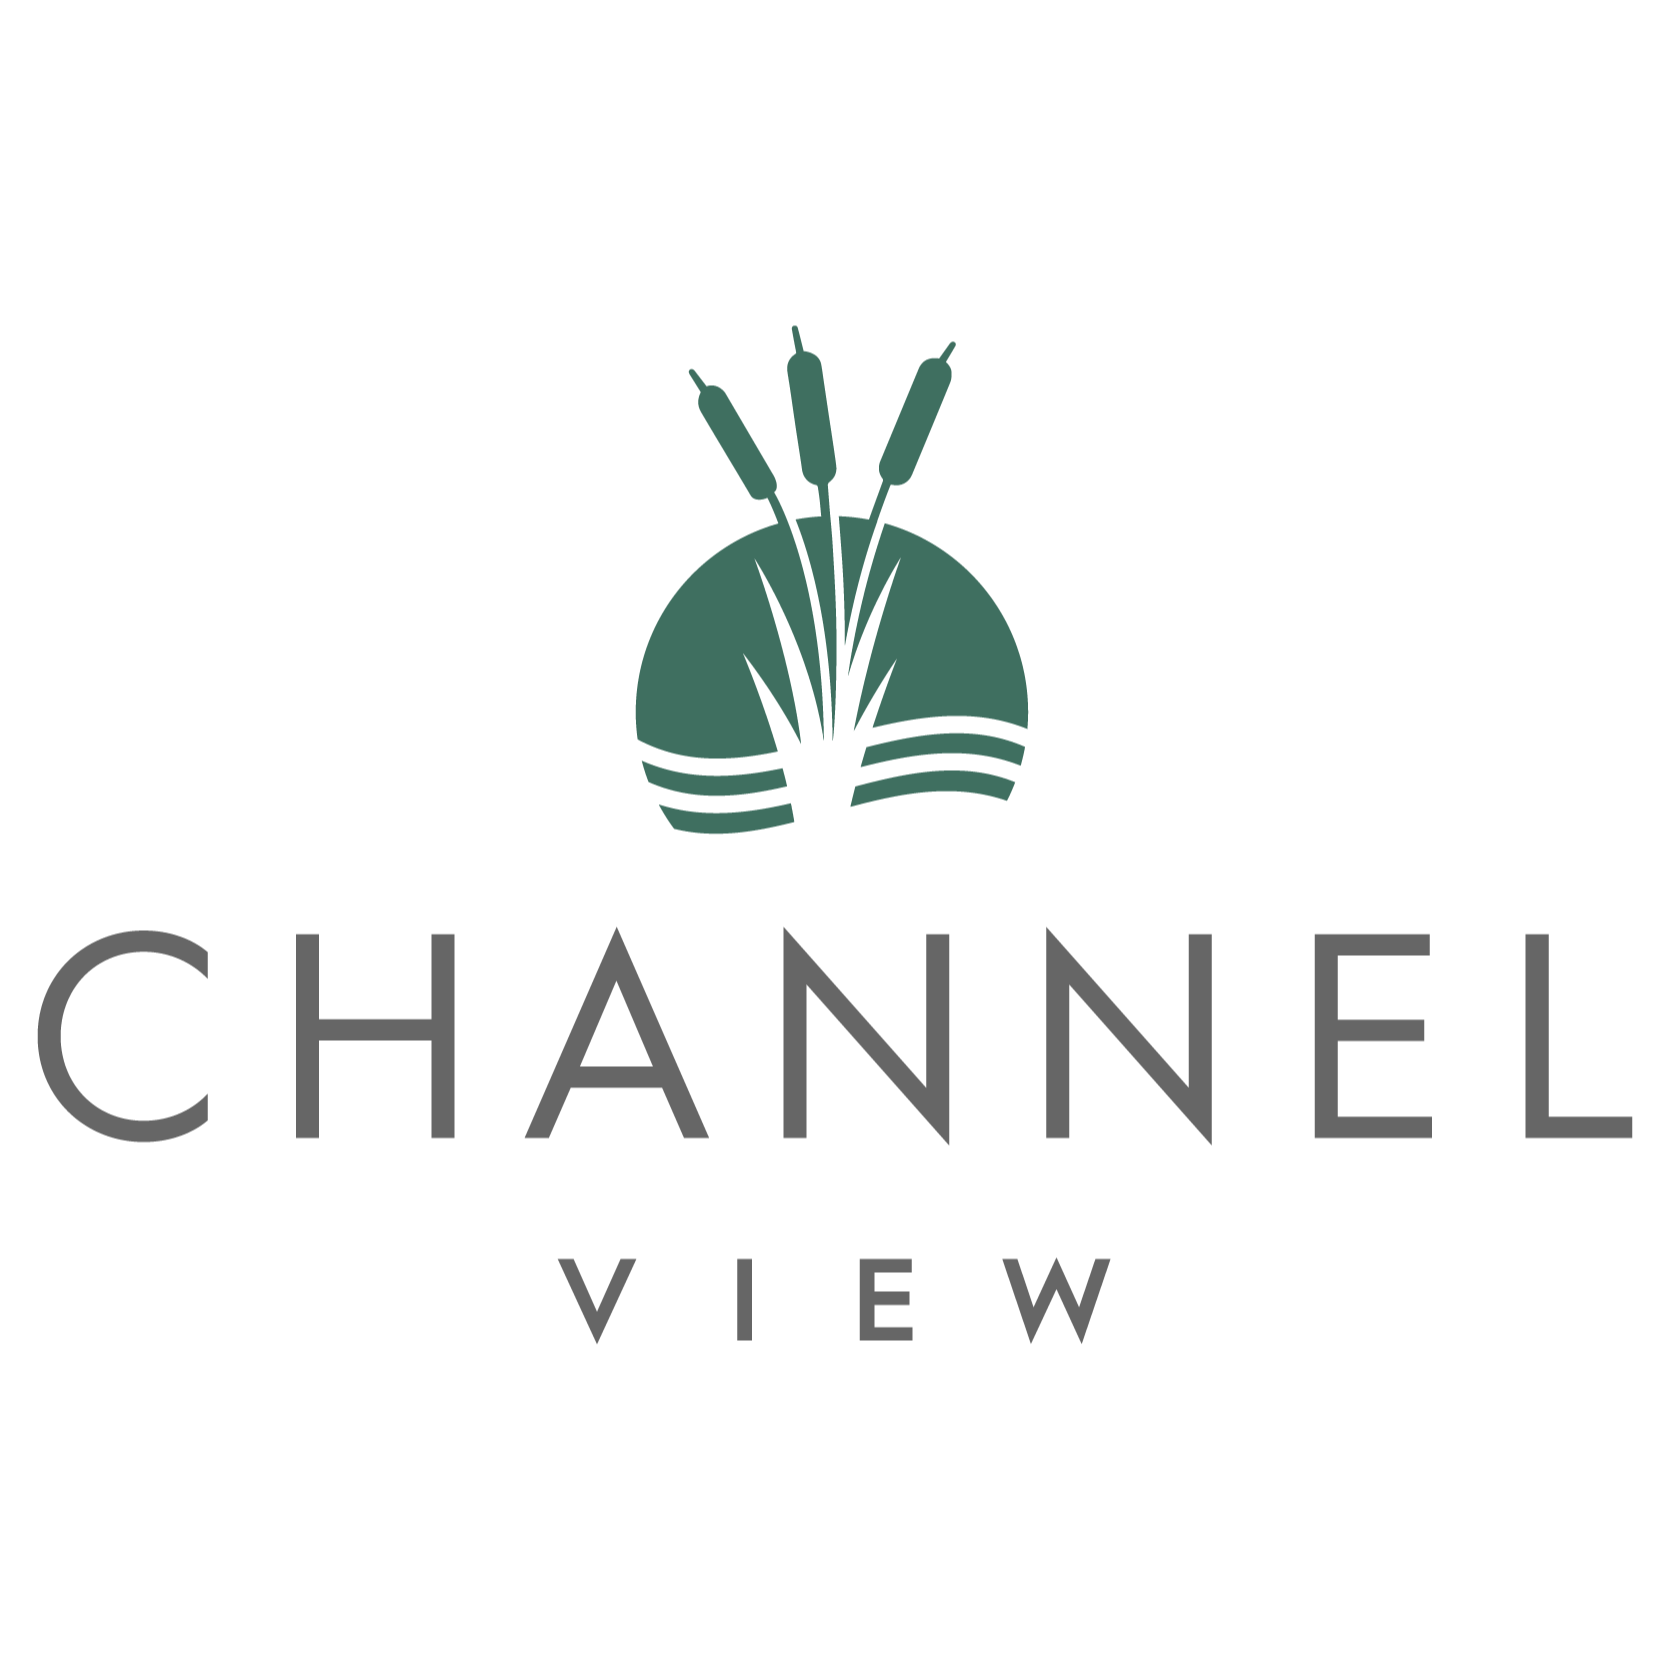 Channel View